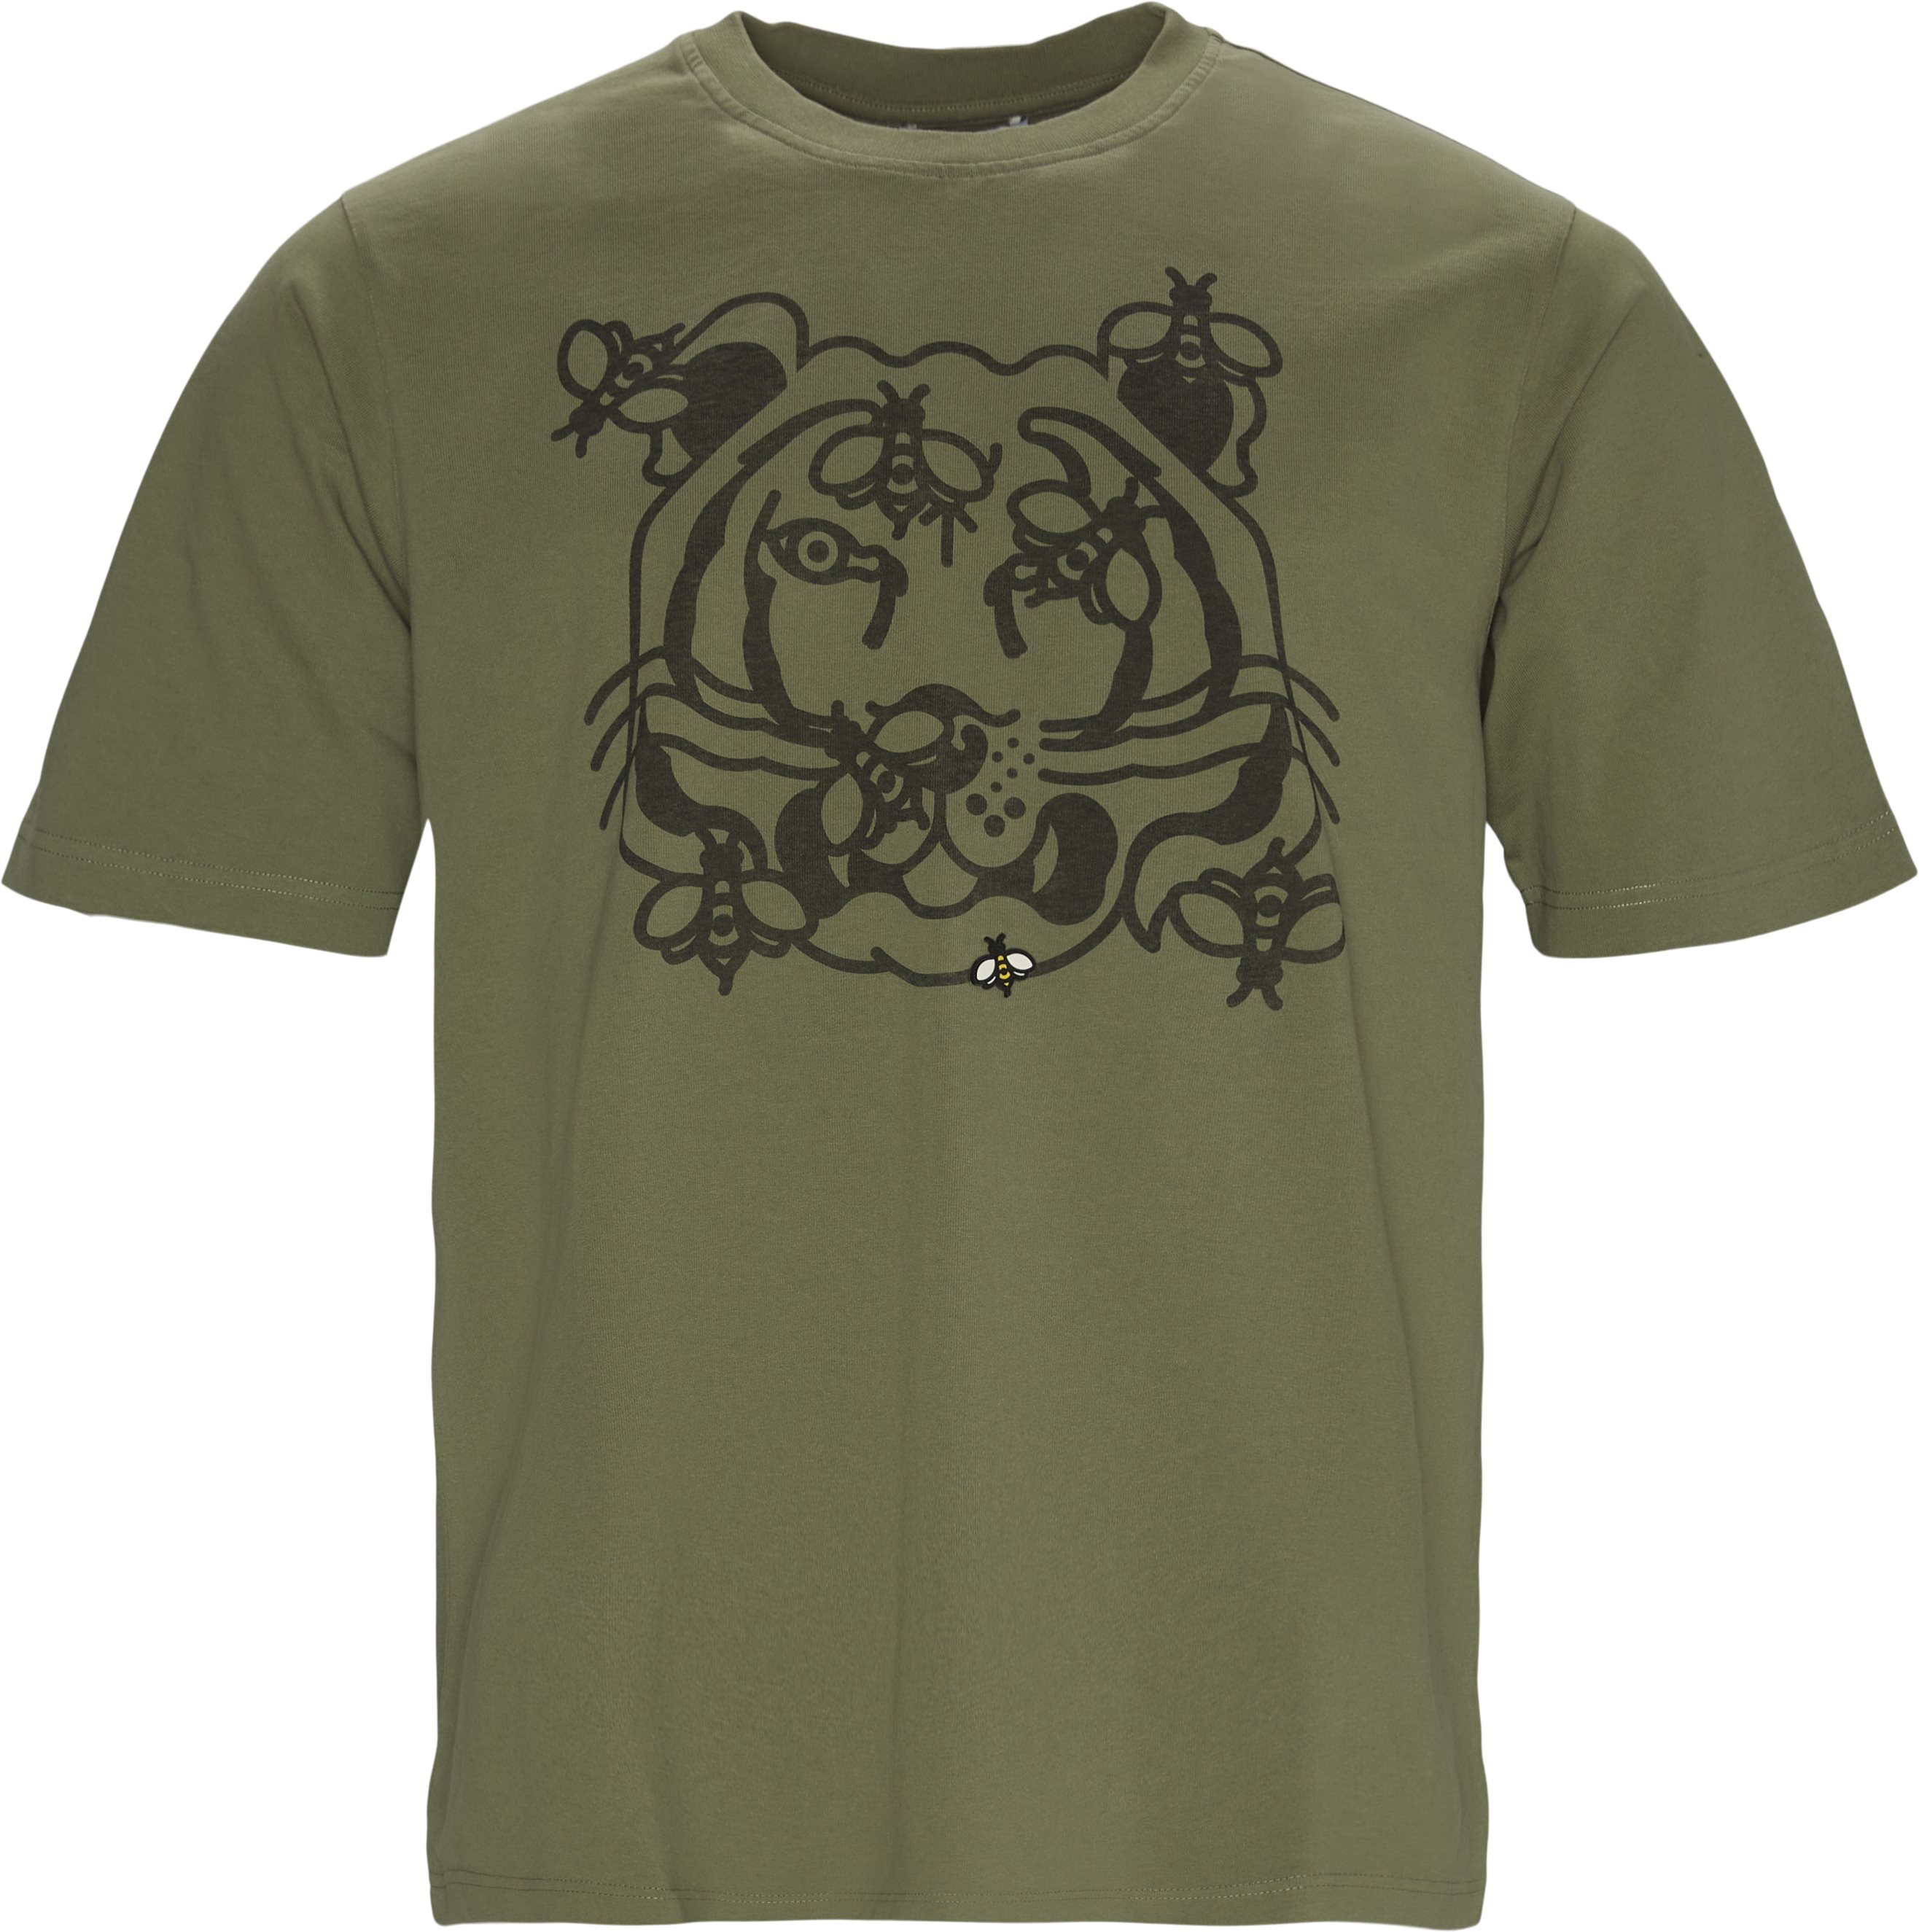 Bee A Tiger Skate Tee - T-shirts - Regular fit - Army